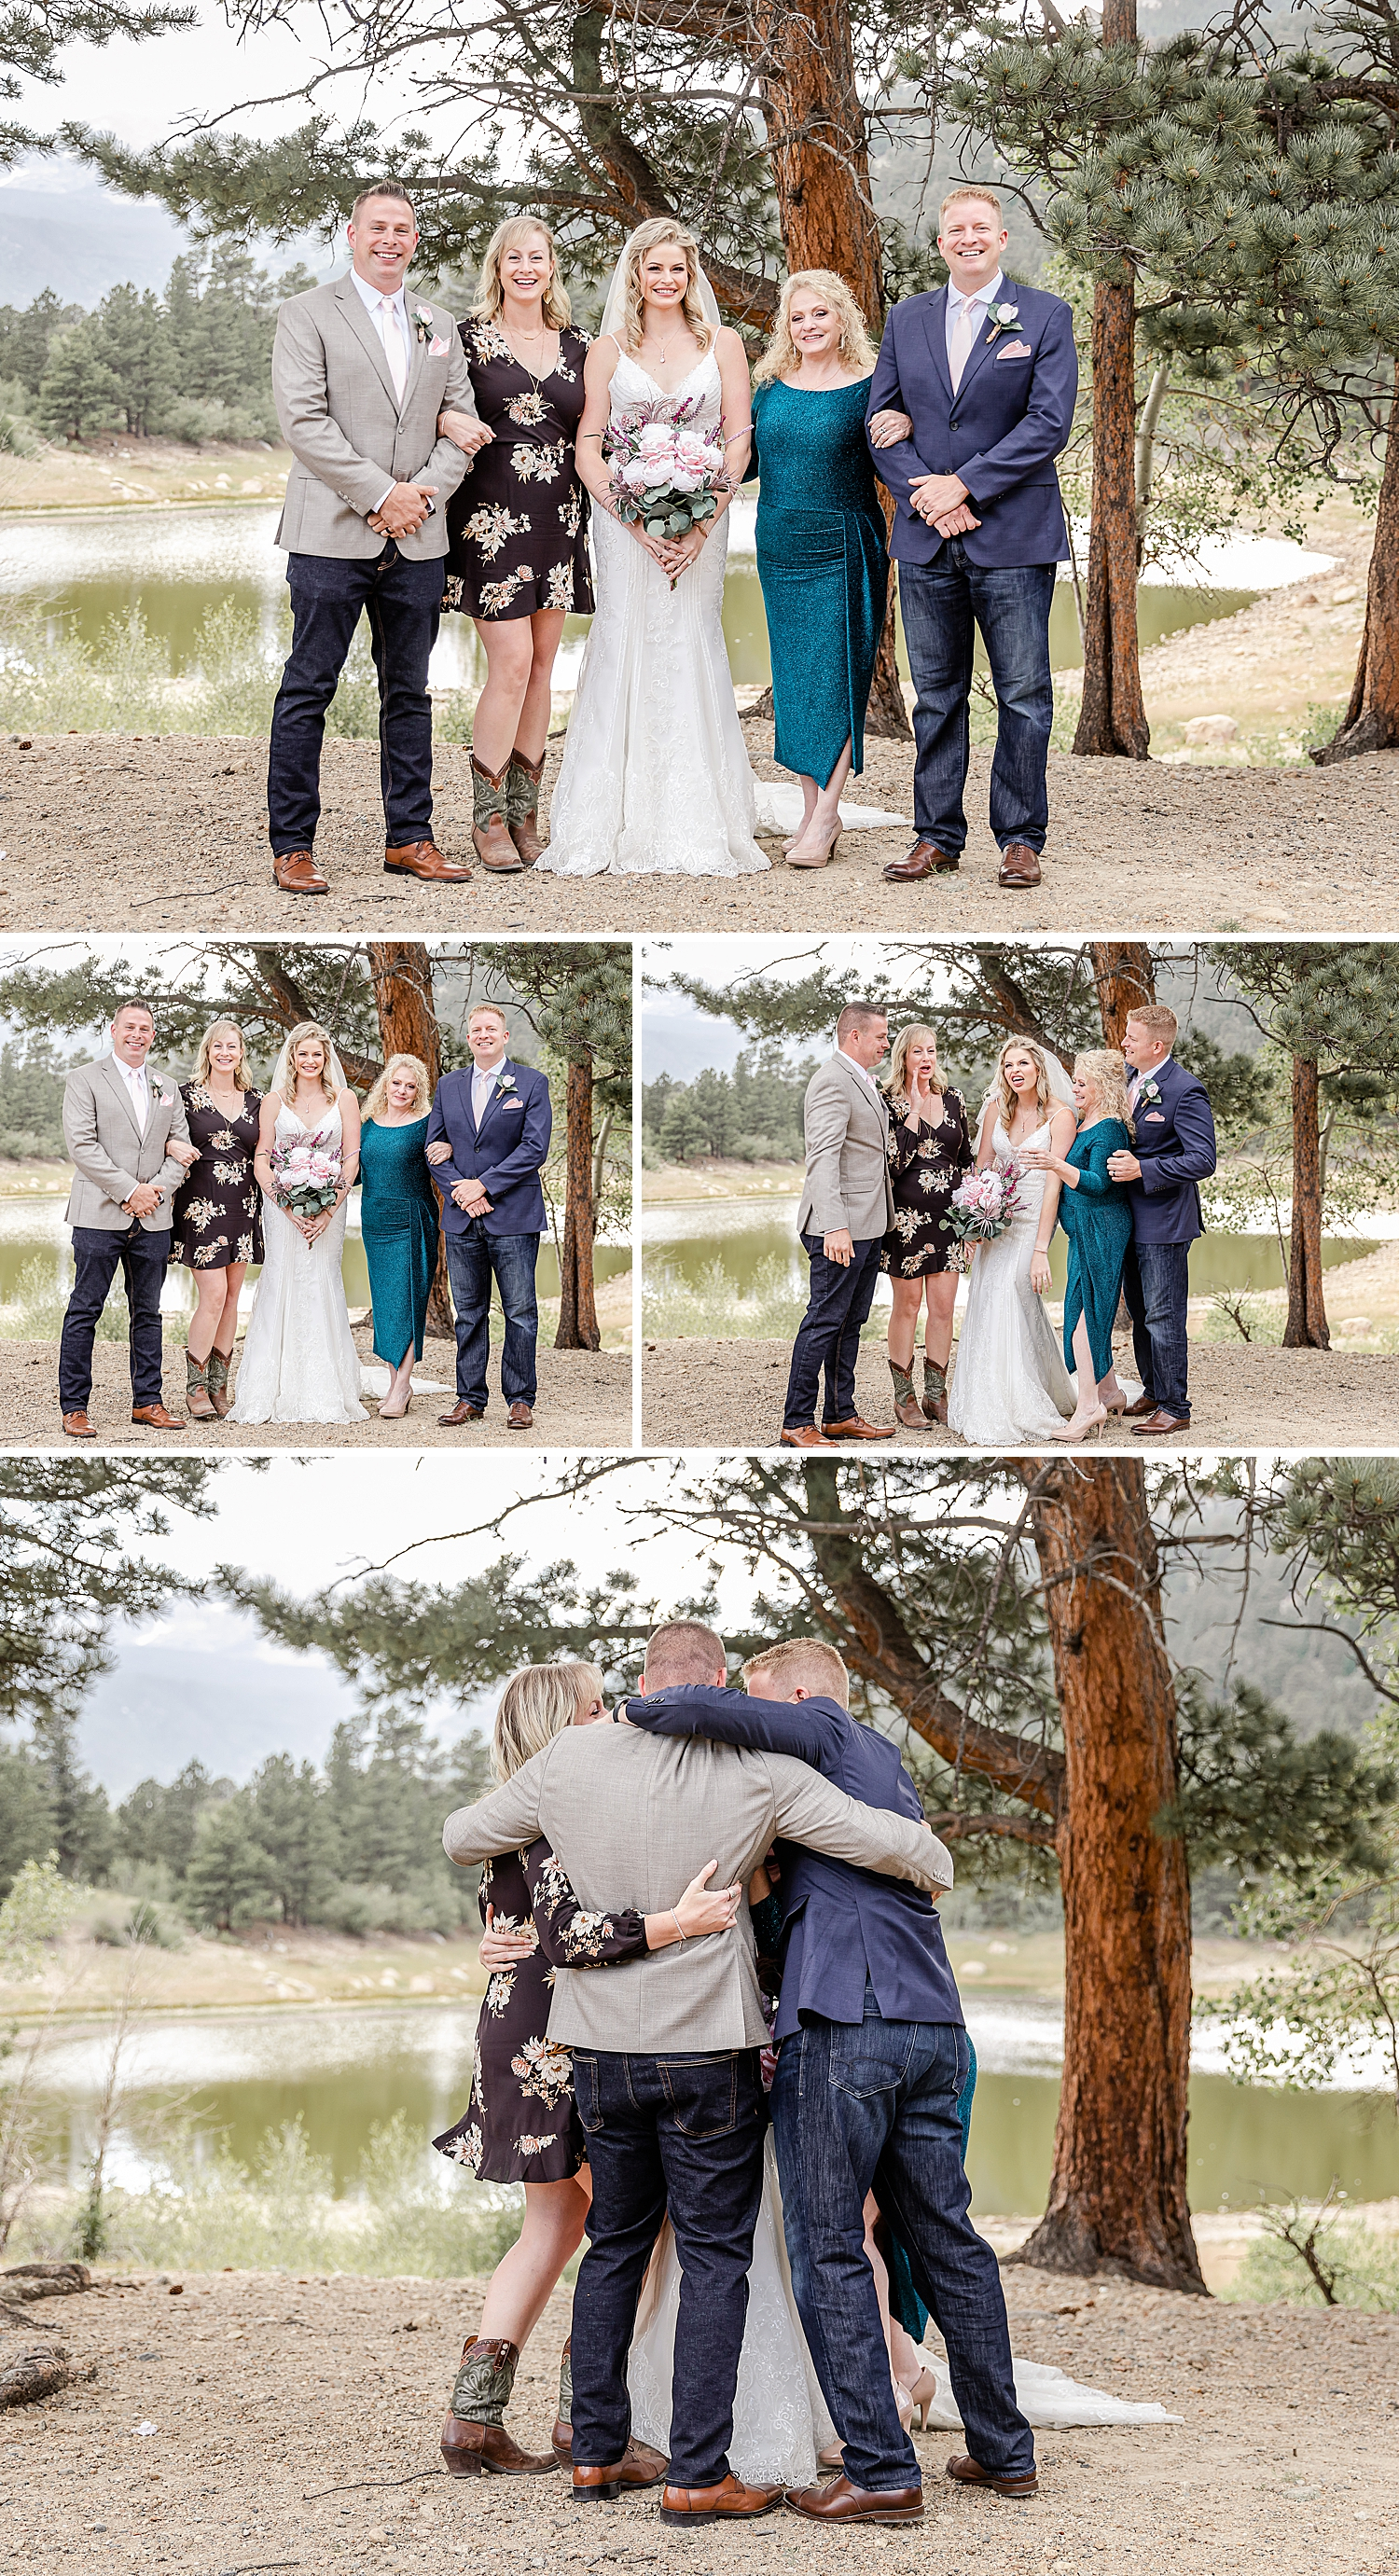 Carly-Barton-Photography-Rocky-Mountain-National-Park-Estes-Park-Wedding-Elopement_0102.jpg